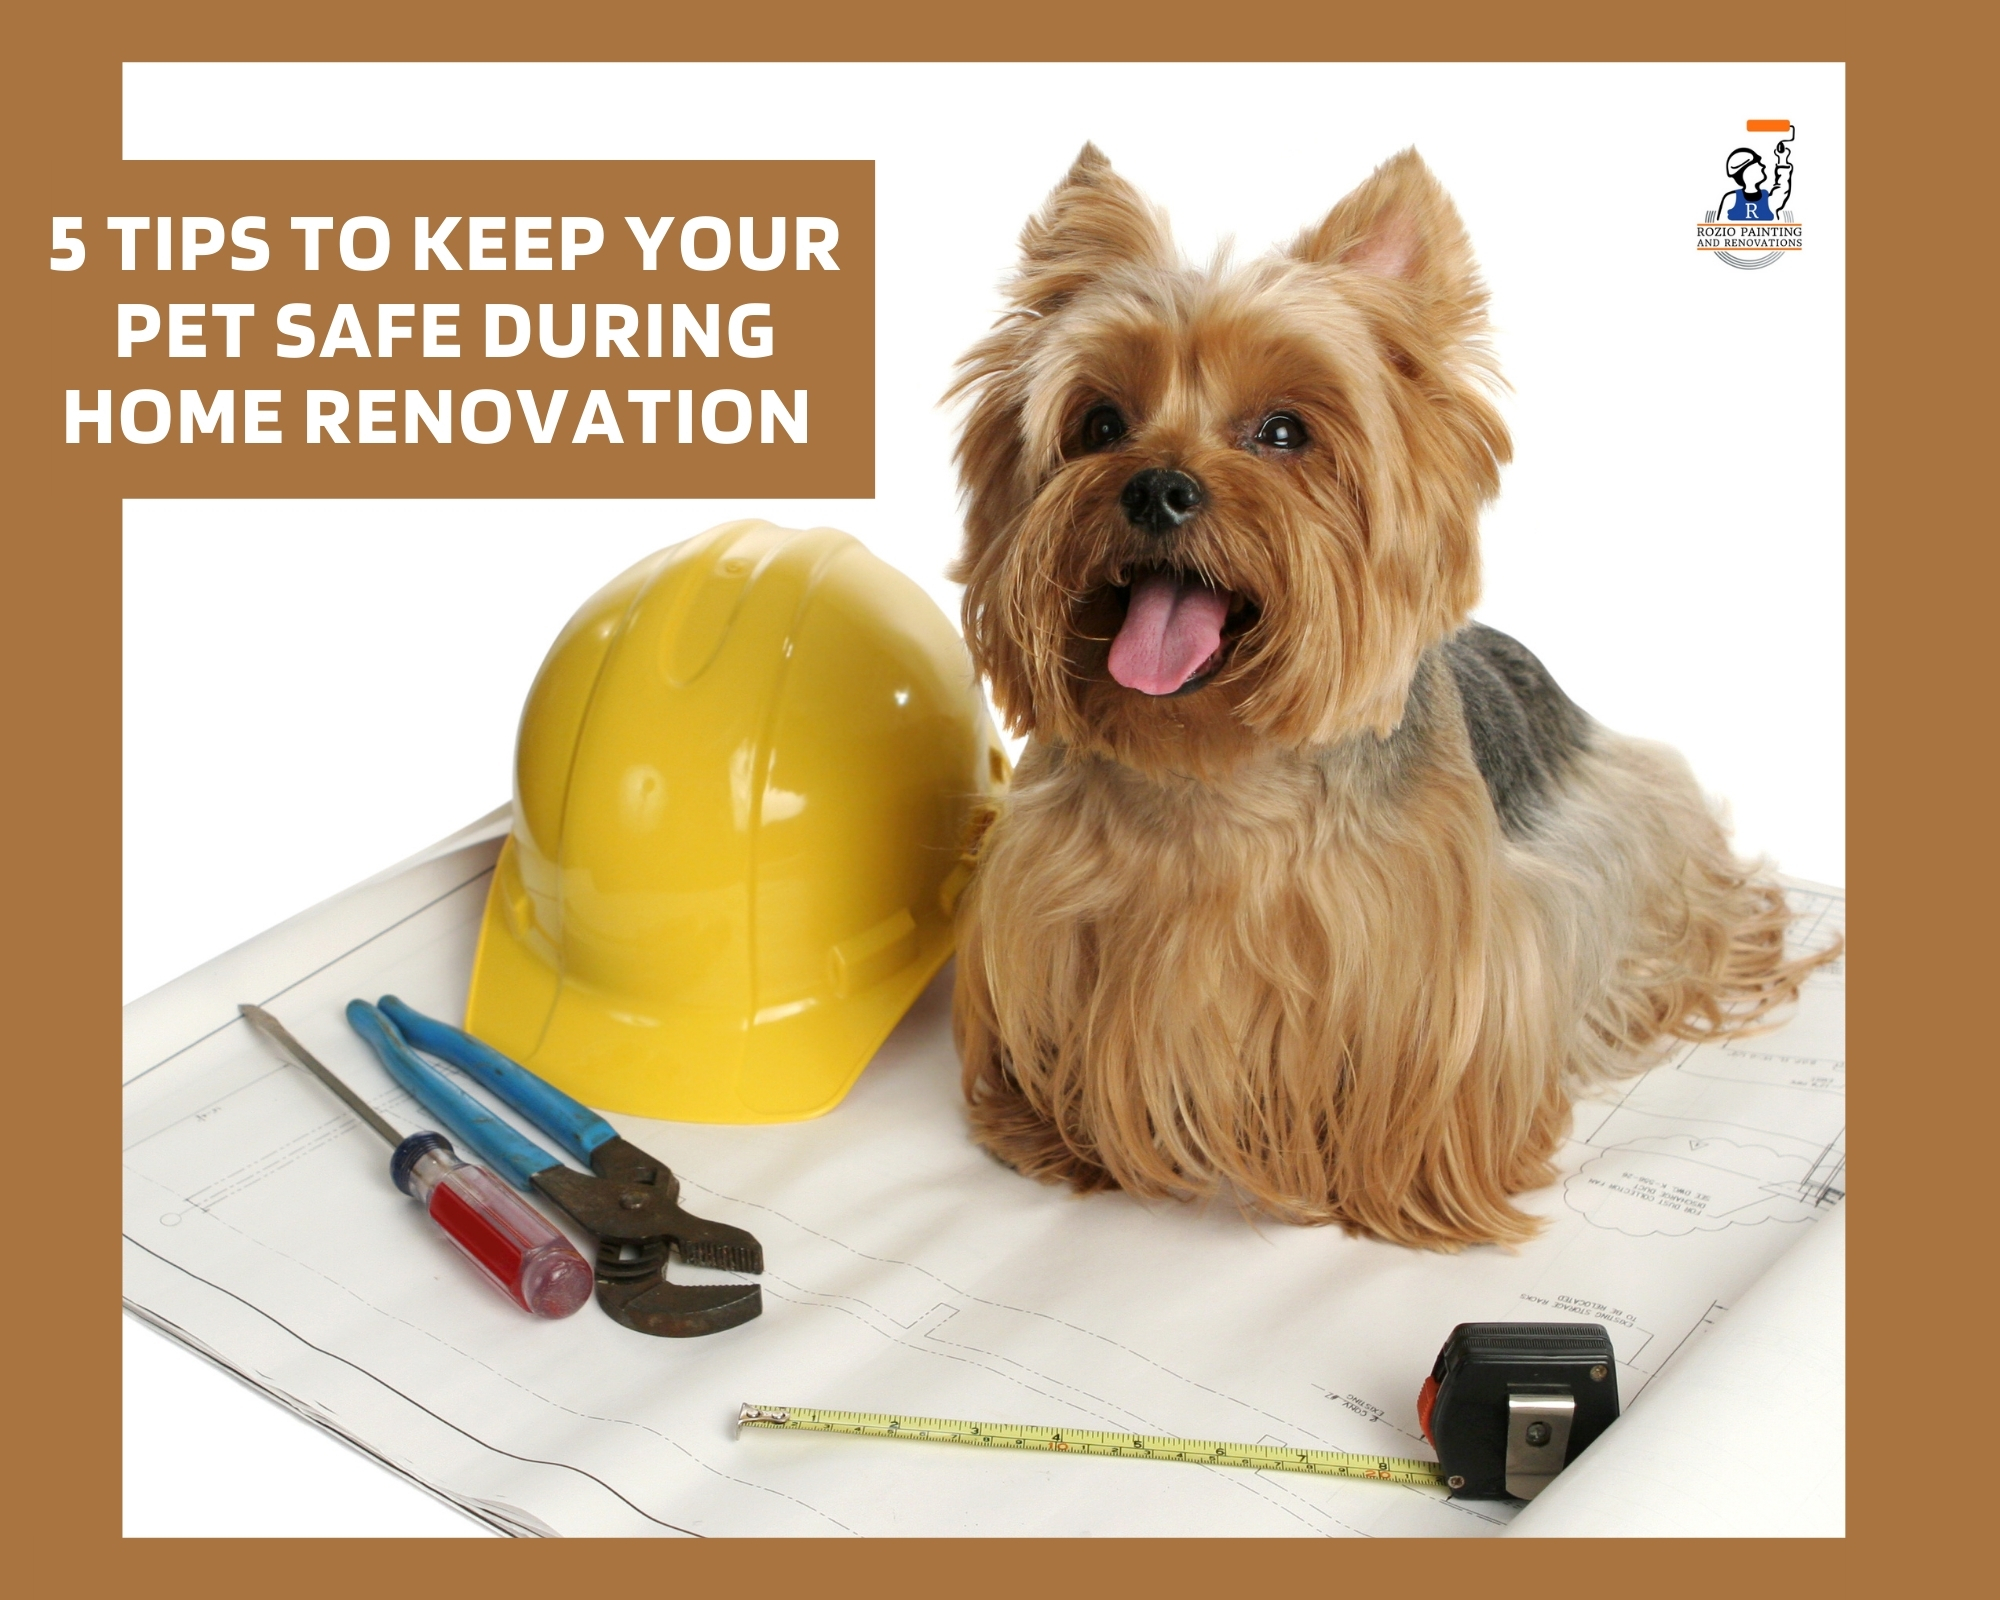 5 Tips to Keep Your Pet Safe During Home Renovation